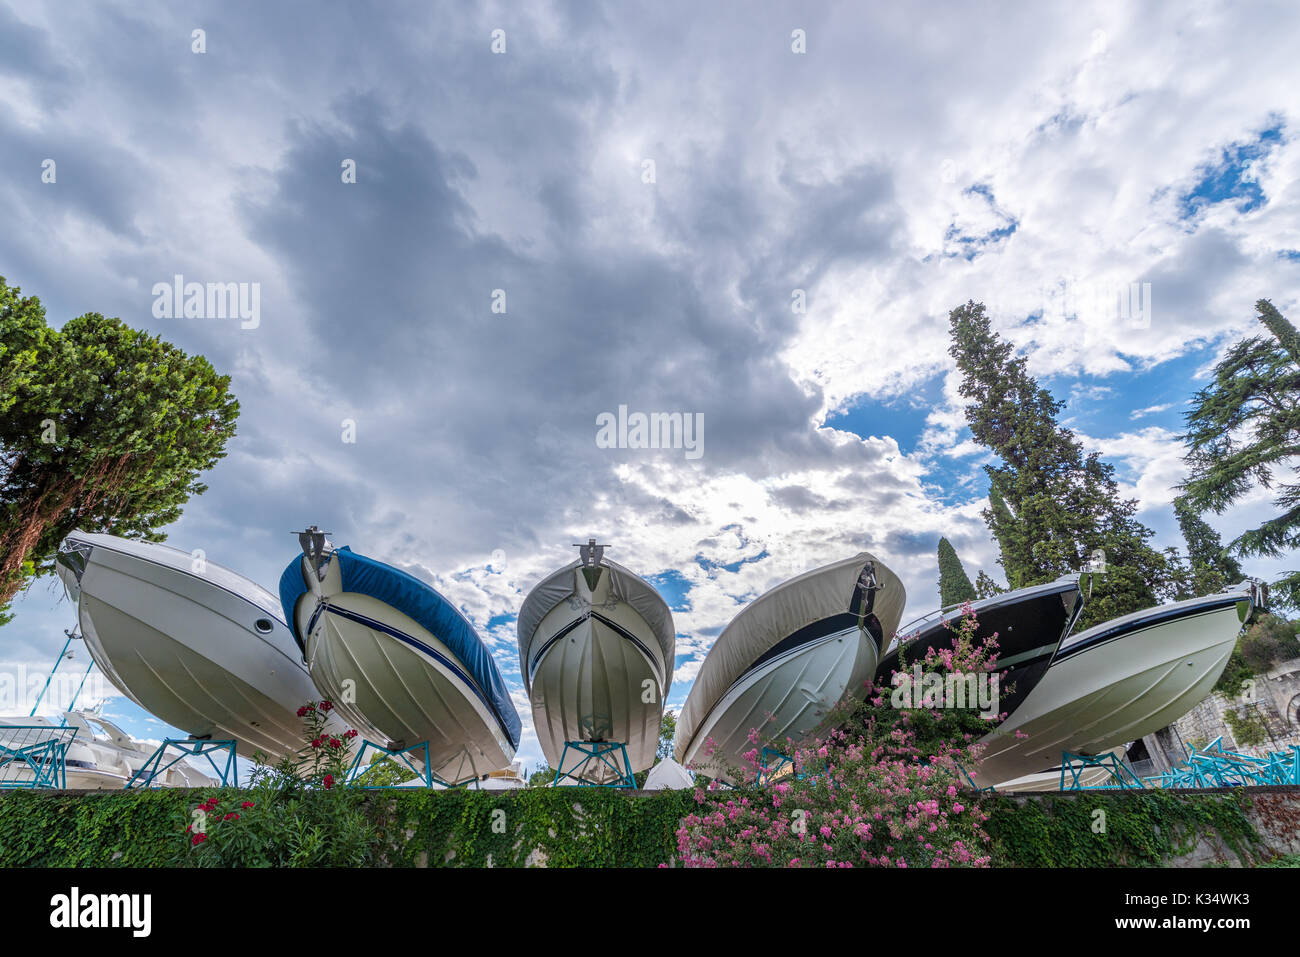 parked boats projected on bue sky  with white dramatic clouds. - Stock Image